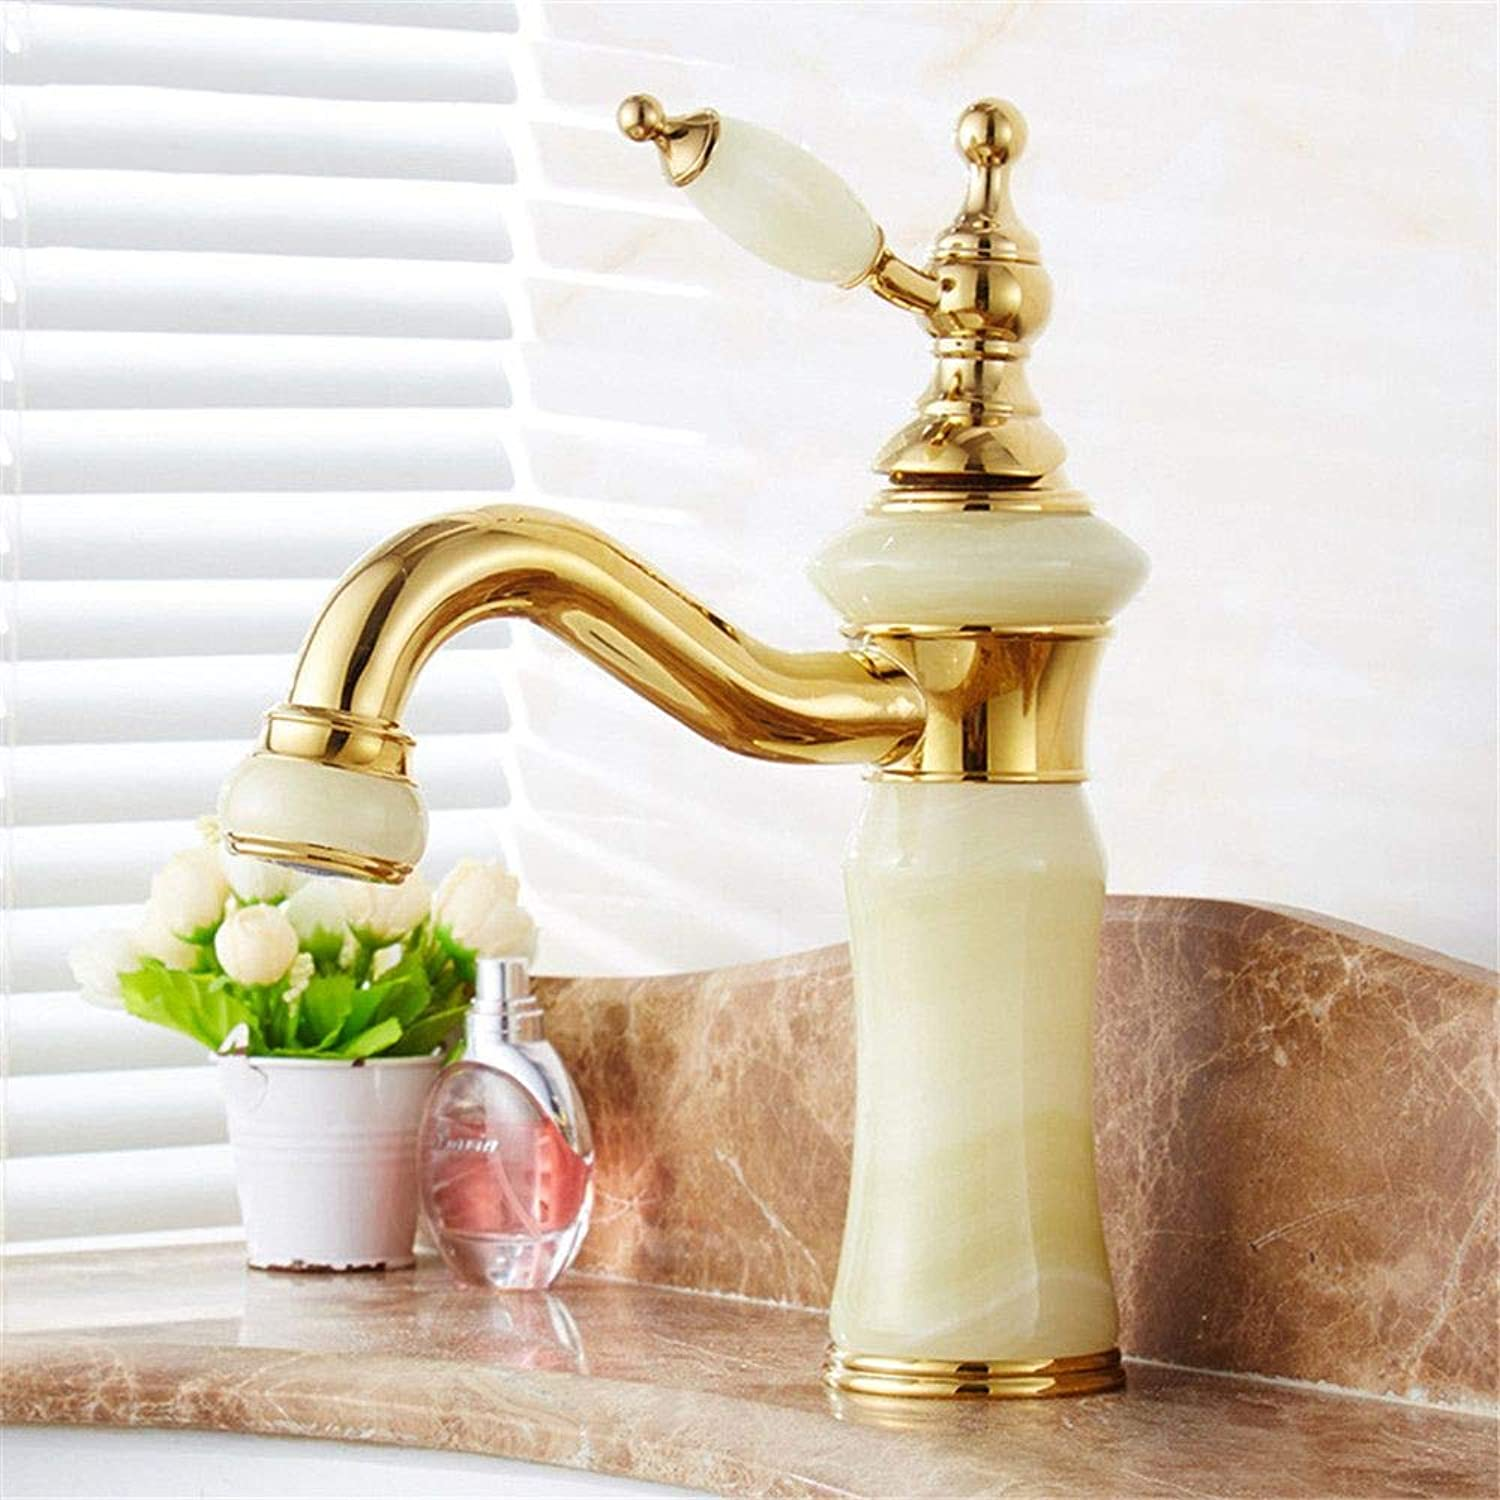 YAWEDA Natural Jade Full Copper gold Face Pot Tap Cold and Hot Water Mixer 360 Degree redary Antique Bathroom Tap Single Hand Strip Aerator,Green Jade